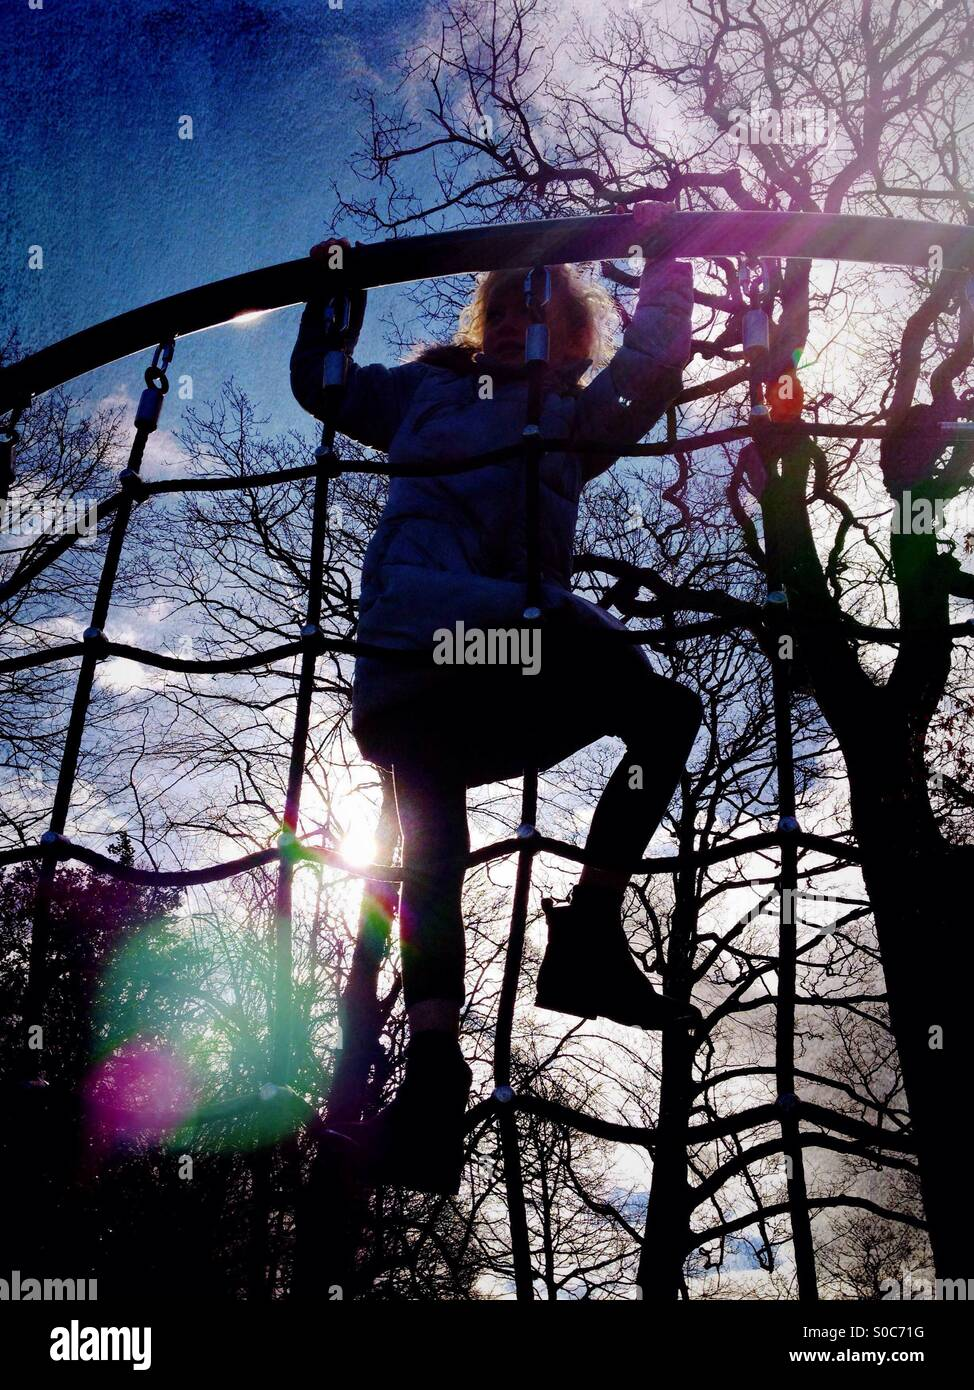 Young girl on climbing frame backlit by sun - Stock Image